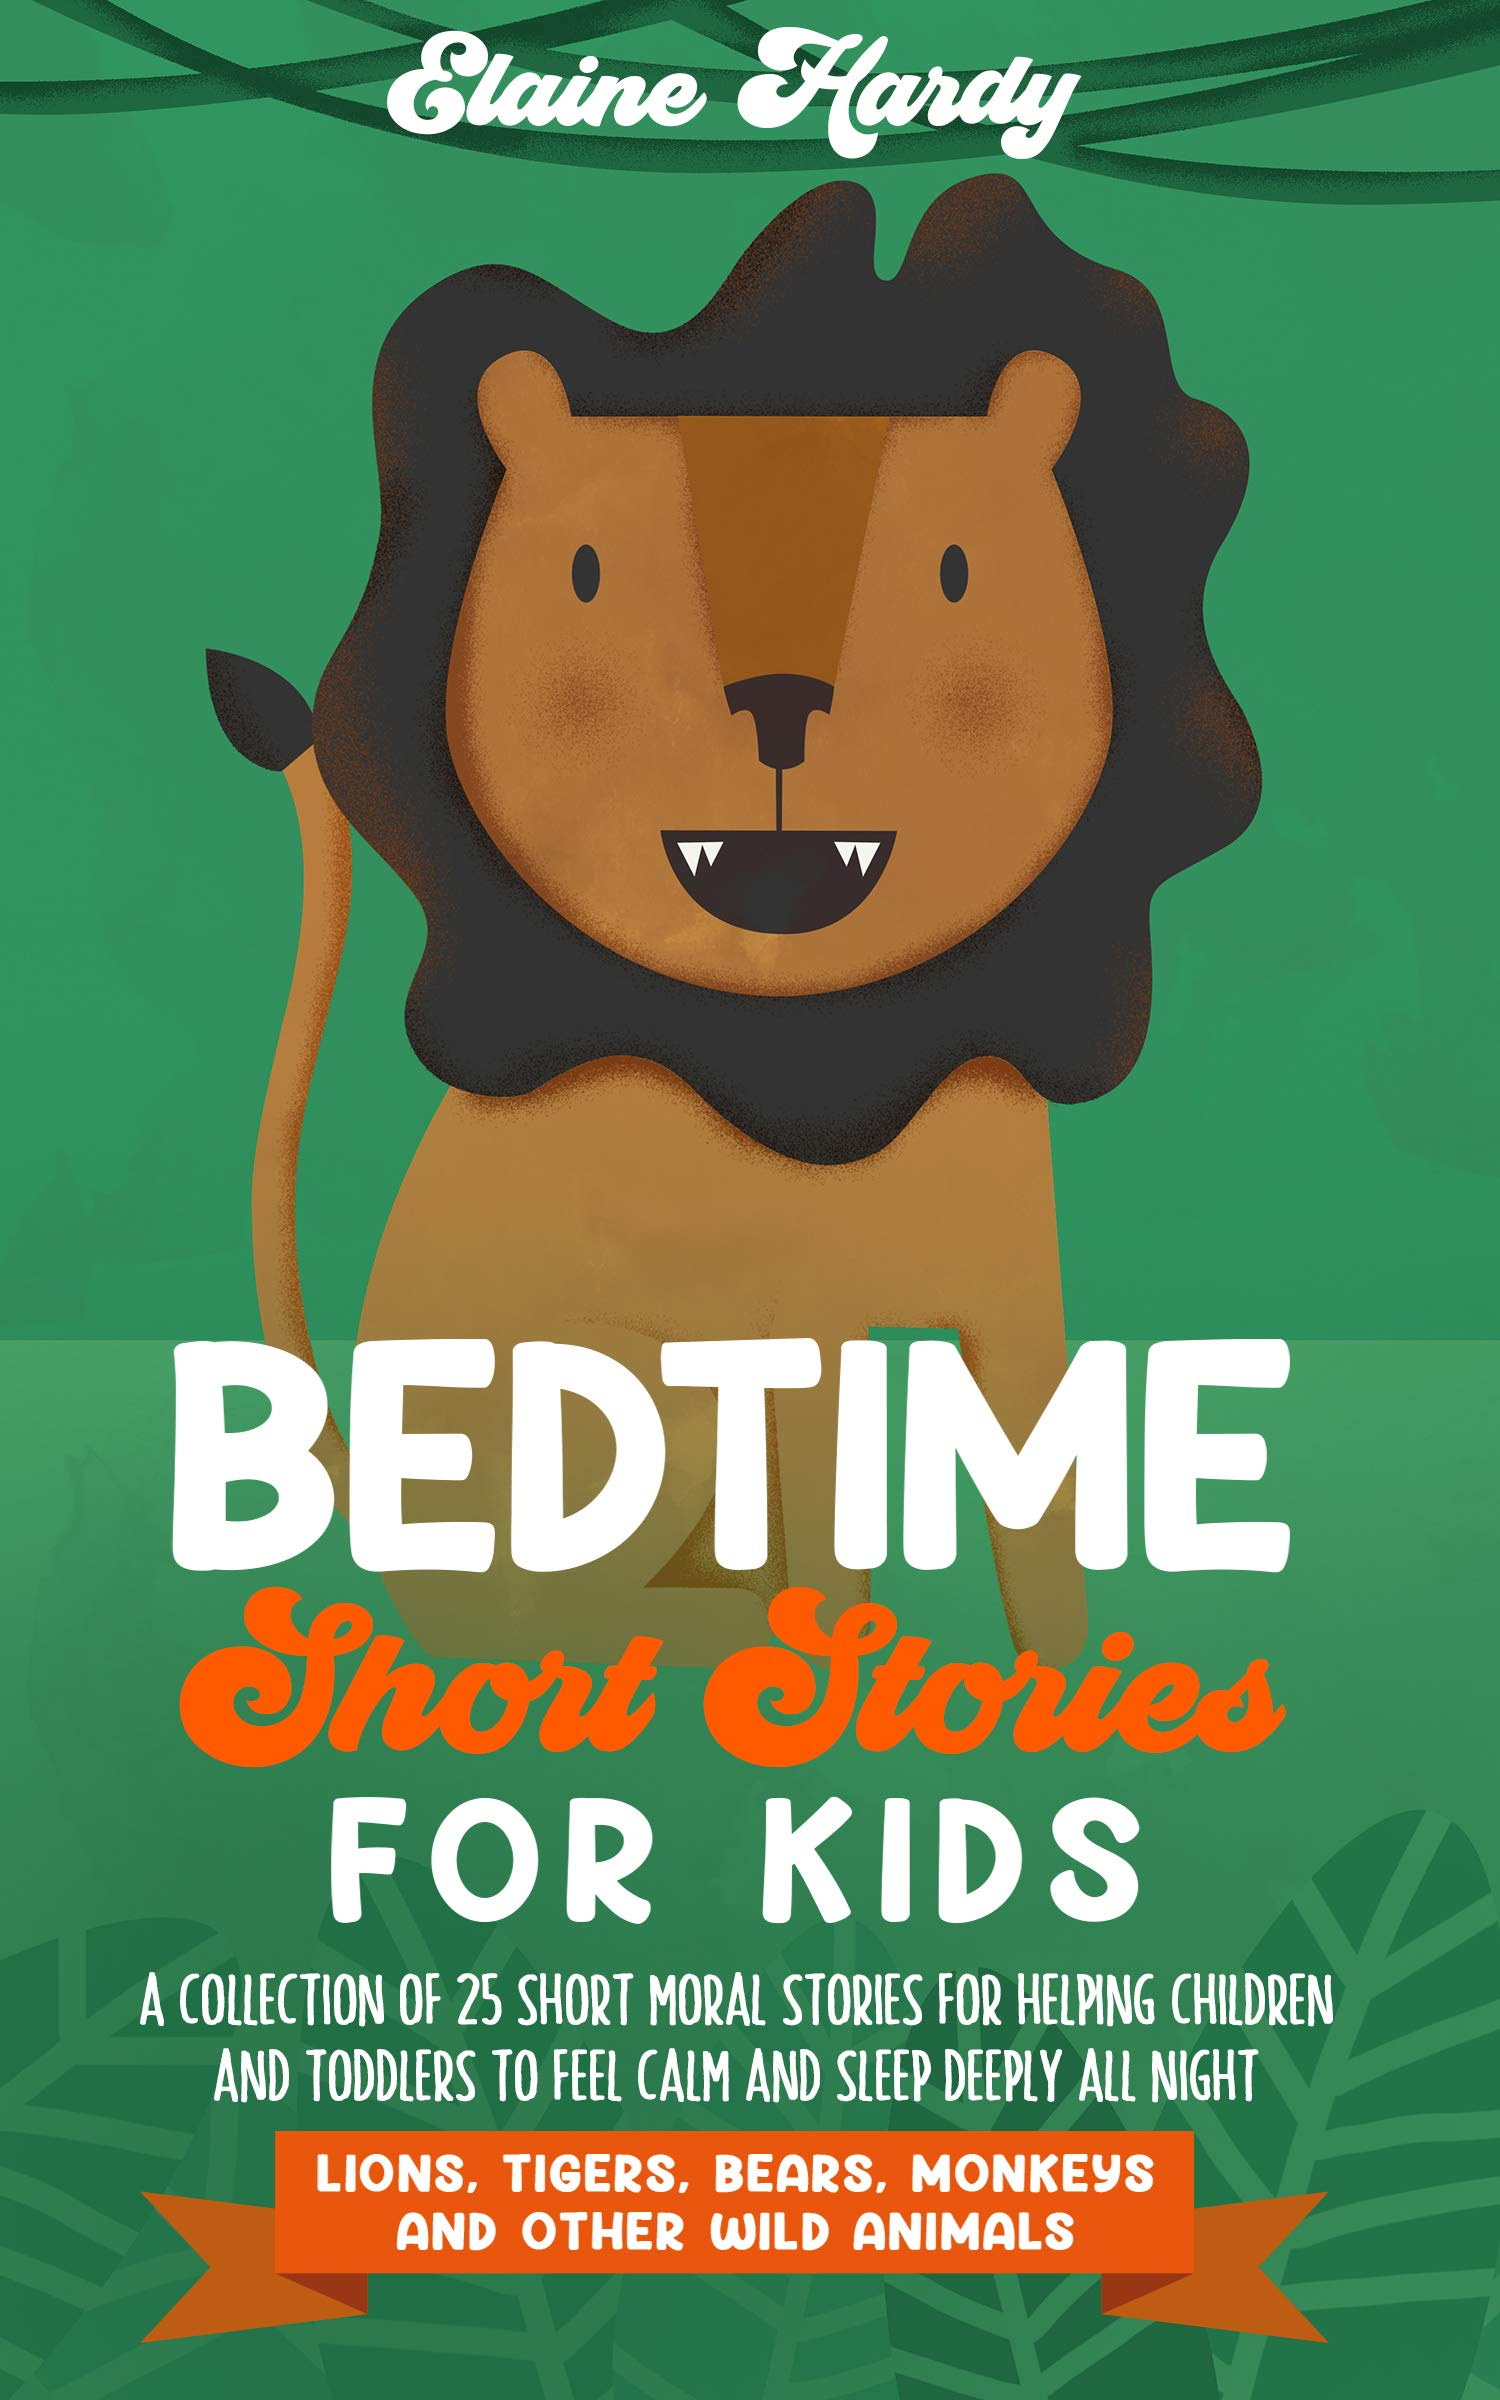 Bedtime Short Stories for Kids: Lions, Tigers, Bears, Monkeys and Other Wild Animals. A Collection of 25 Short Moral Stories for Helping Children and Toddlers to Feel Calm and Sleep Deeply All Night